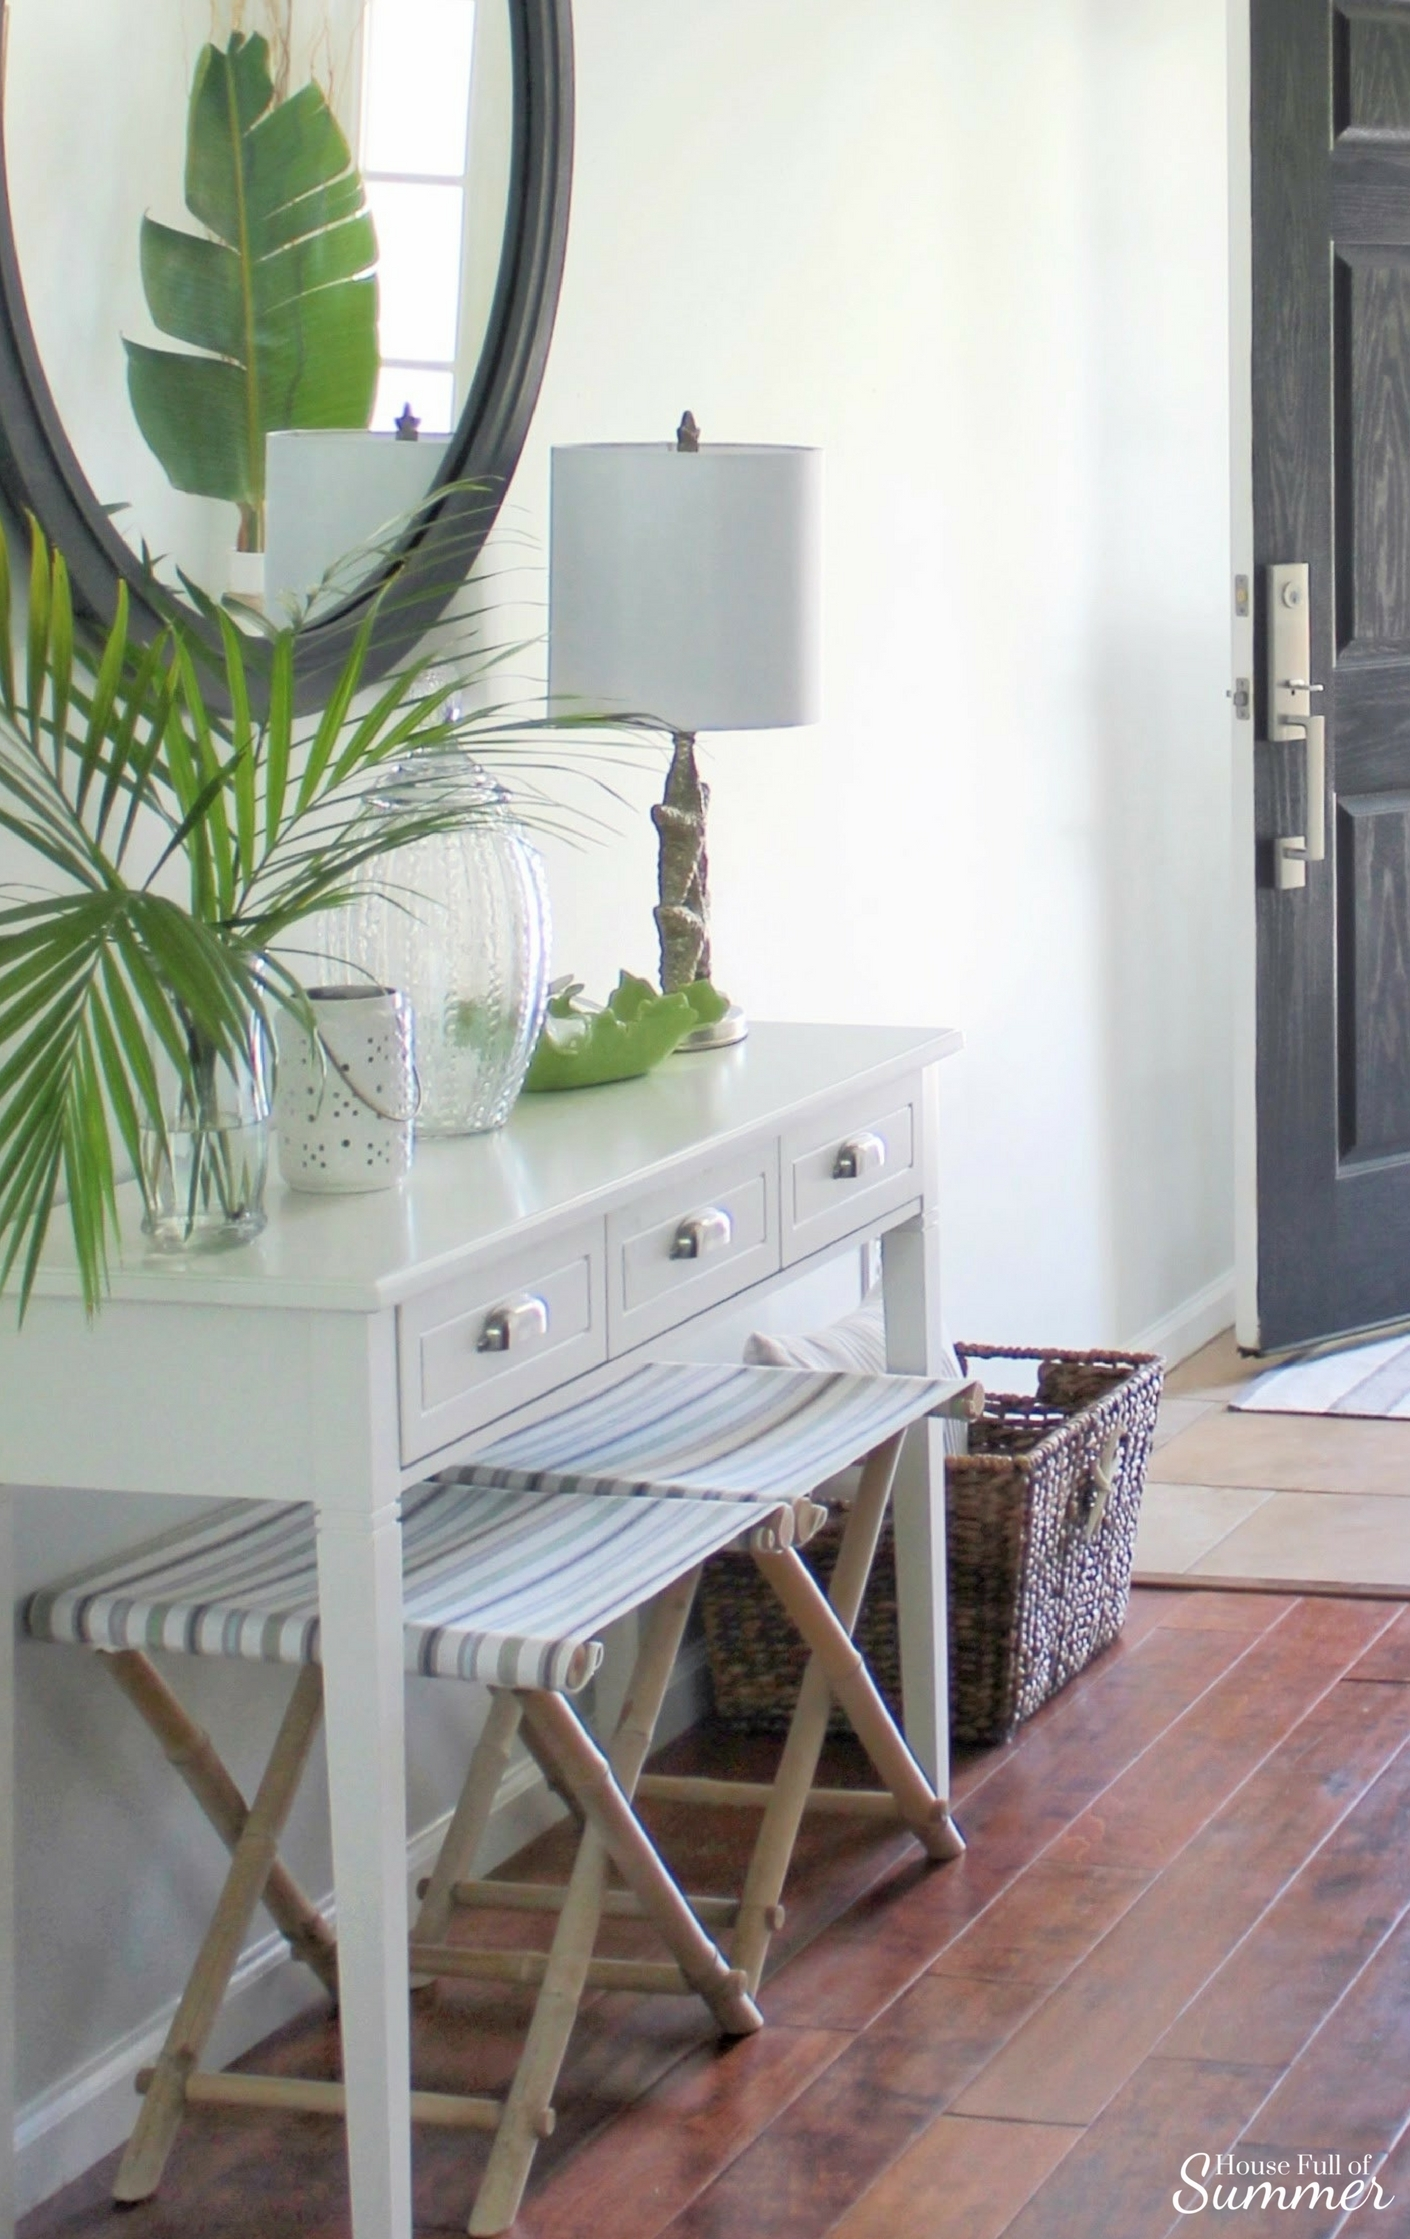 House Full of Summer - Foyer makeover on a budget, before and after, white console table, entryway decor, foyer ideas, stools, tropical home style, coastal decor